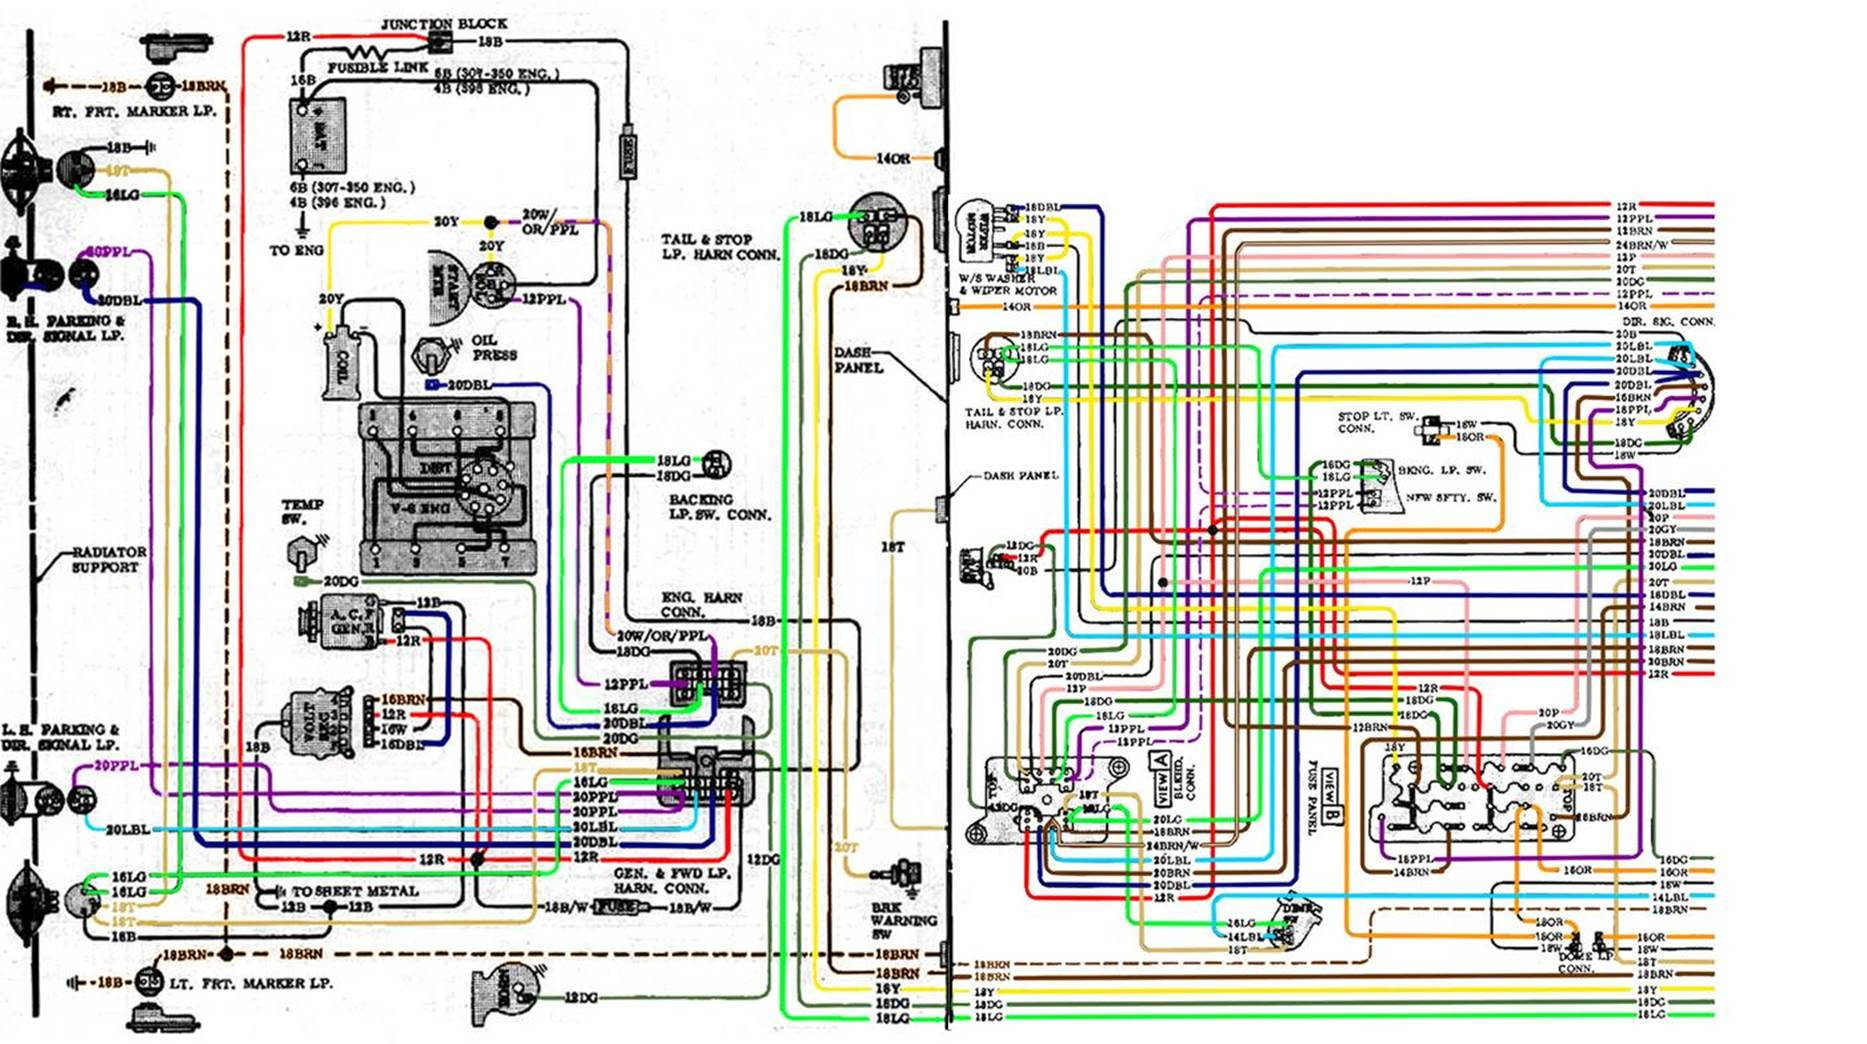 chevelle wiring diagram chevelle wiring diagrams online 67 72 chevy wiring diagram description chevelle wiring diagram